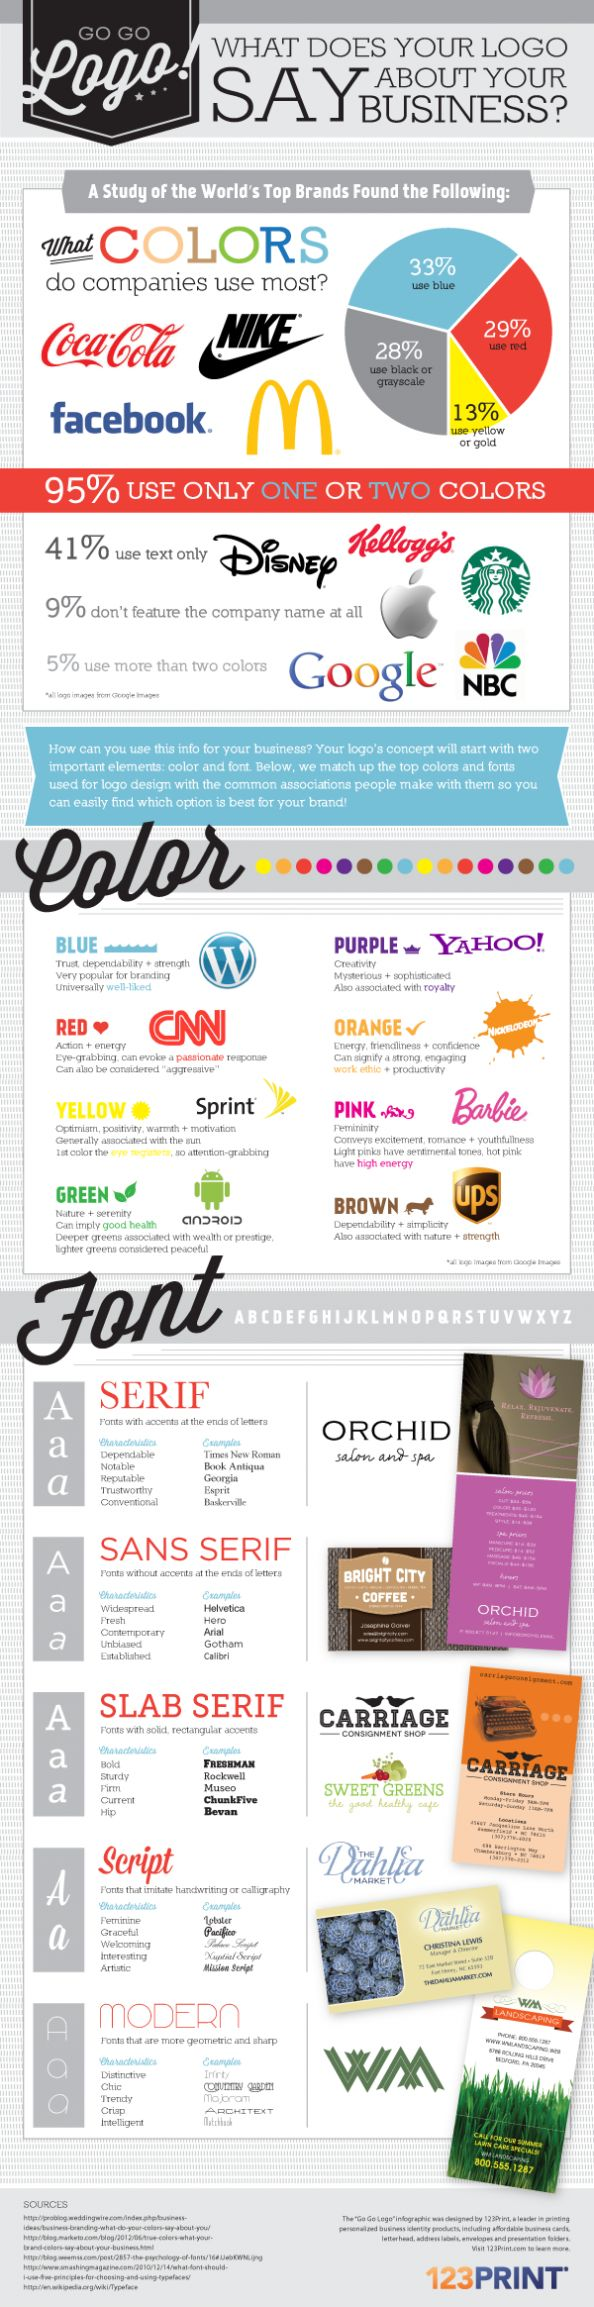 What Does Your #Logo Say About Your Business? #Infographic